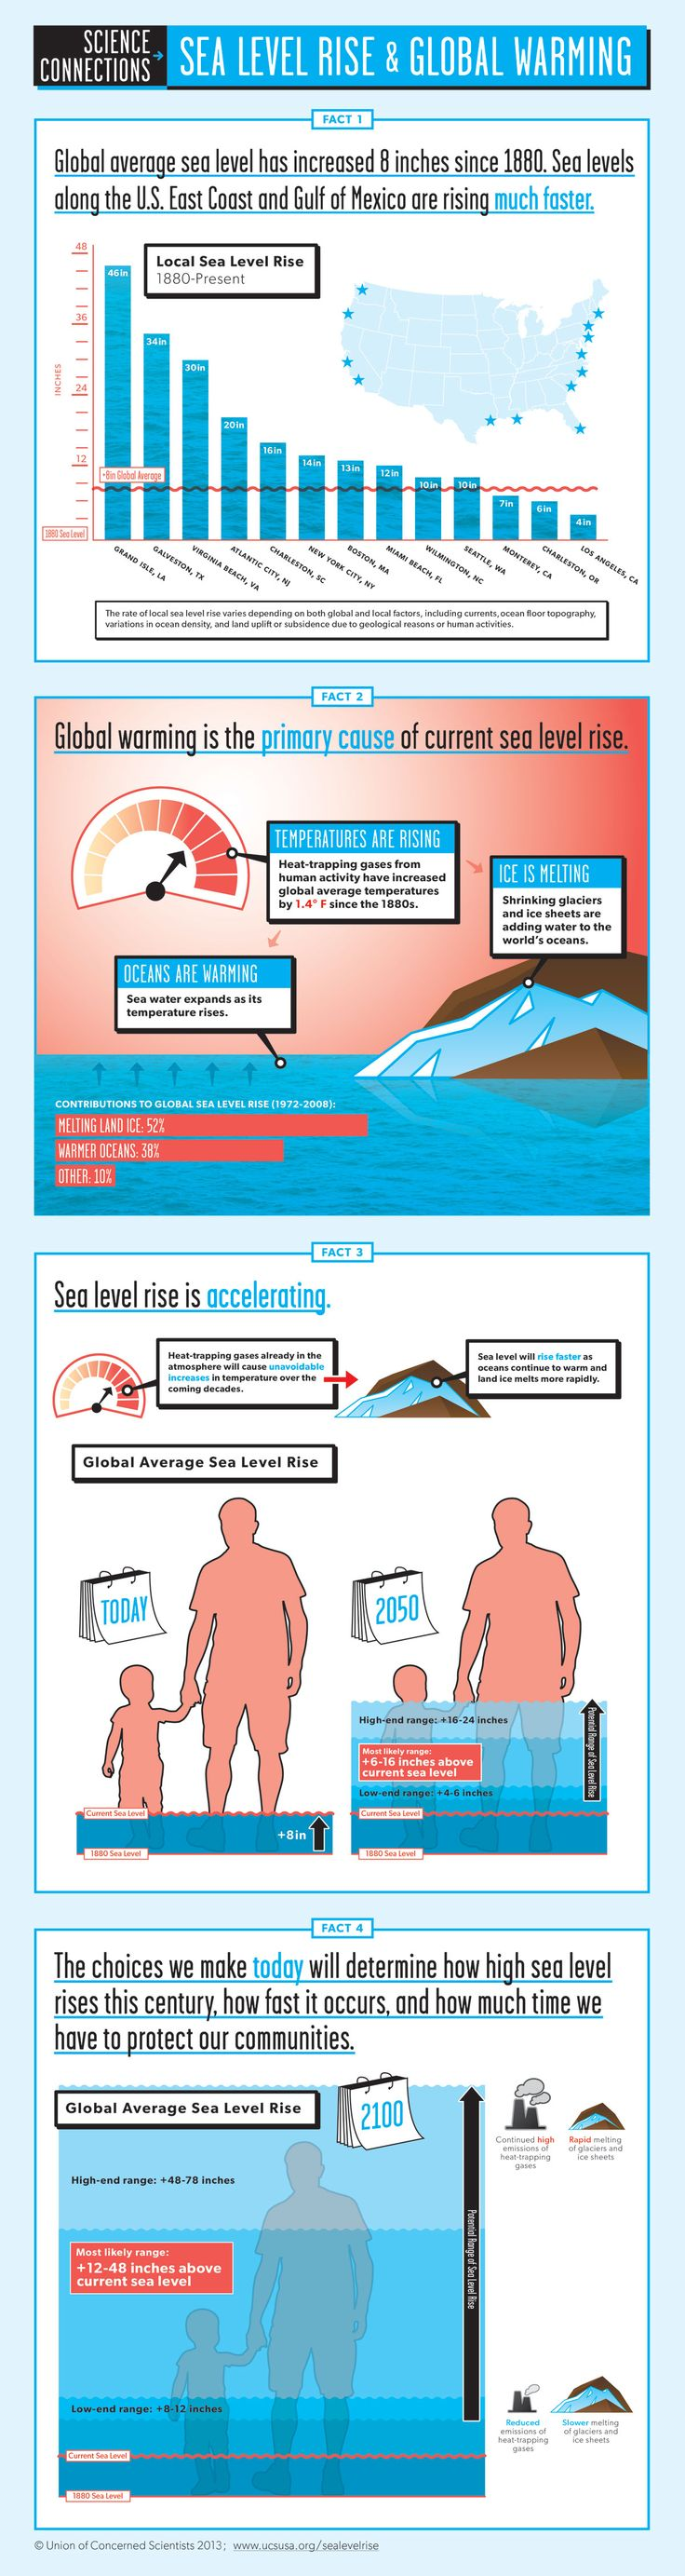 Infographic: Sea Level Rise and Global Warming | Union of Concerned Scientists